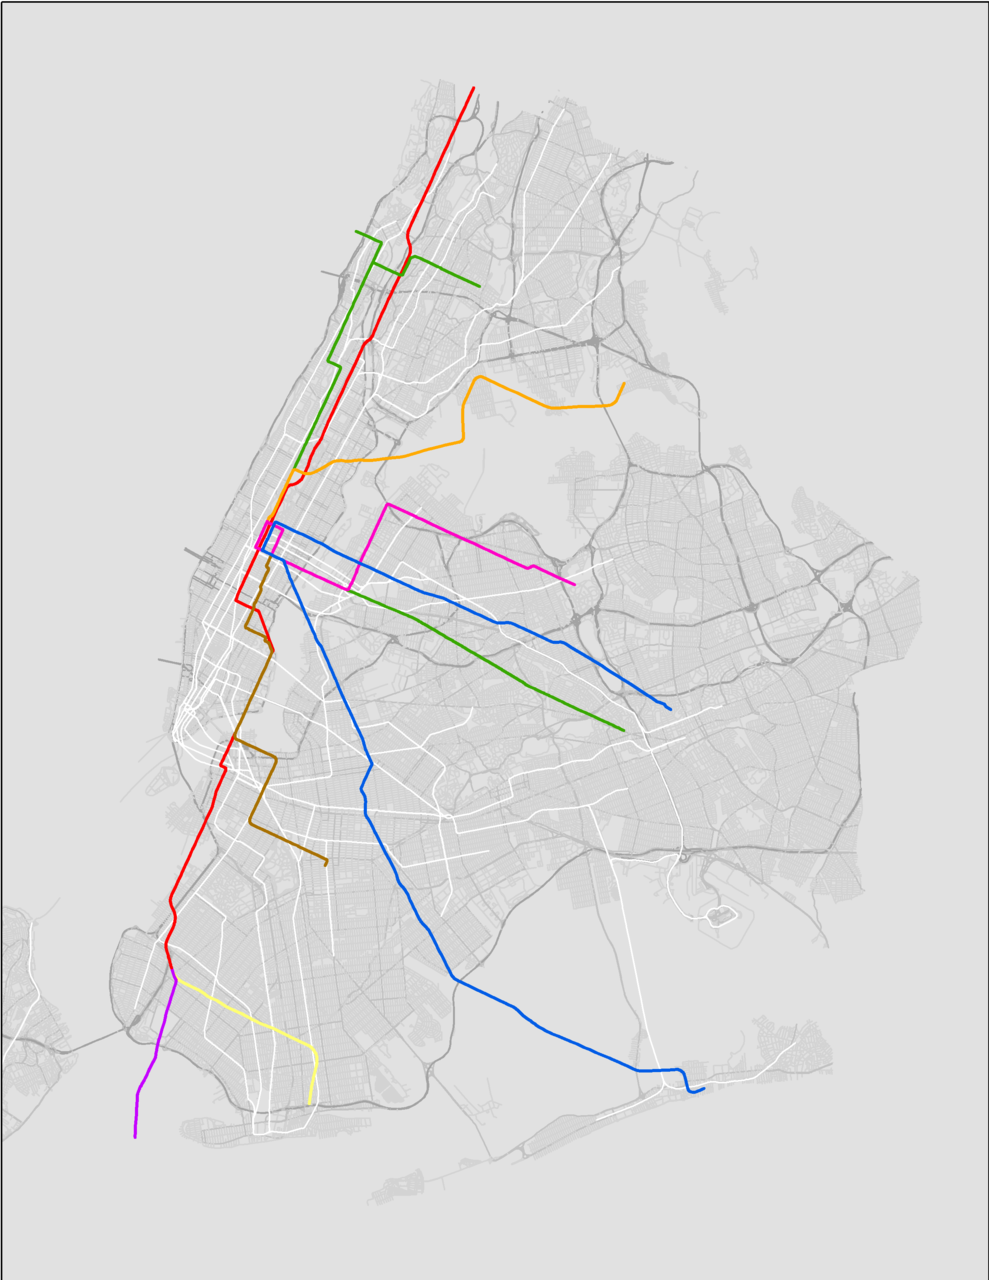 photoentropy:transitmaps:   Fantasy Map: Chicago El Overlaid On New York City A bit of whimsy for you today from Reddit, brought to my attention by Twitter user @GordonWerner. The El has been flipped both horizontally and vertically, then rotated to fit Manhattan's street grid, but the scaling is totally accurate. It looks like The Loop is placed in the area directly below Central Park. A few things from this: it's actually kind of scary how well this fits; and it's astounding just how dense the New York subway's lines really are (shown here in white). (Source: Reddit)